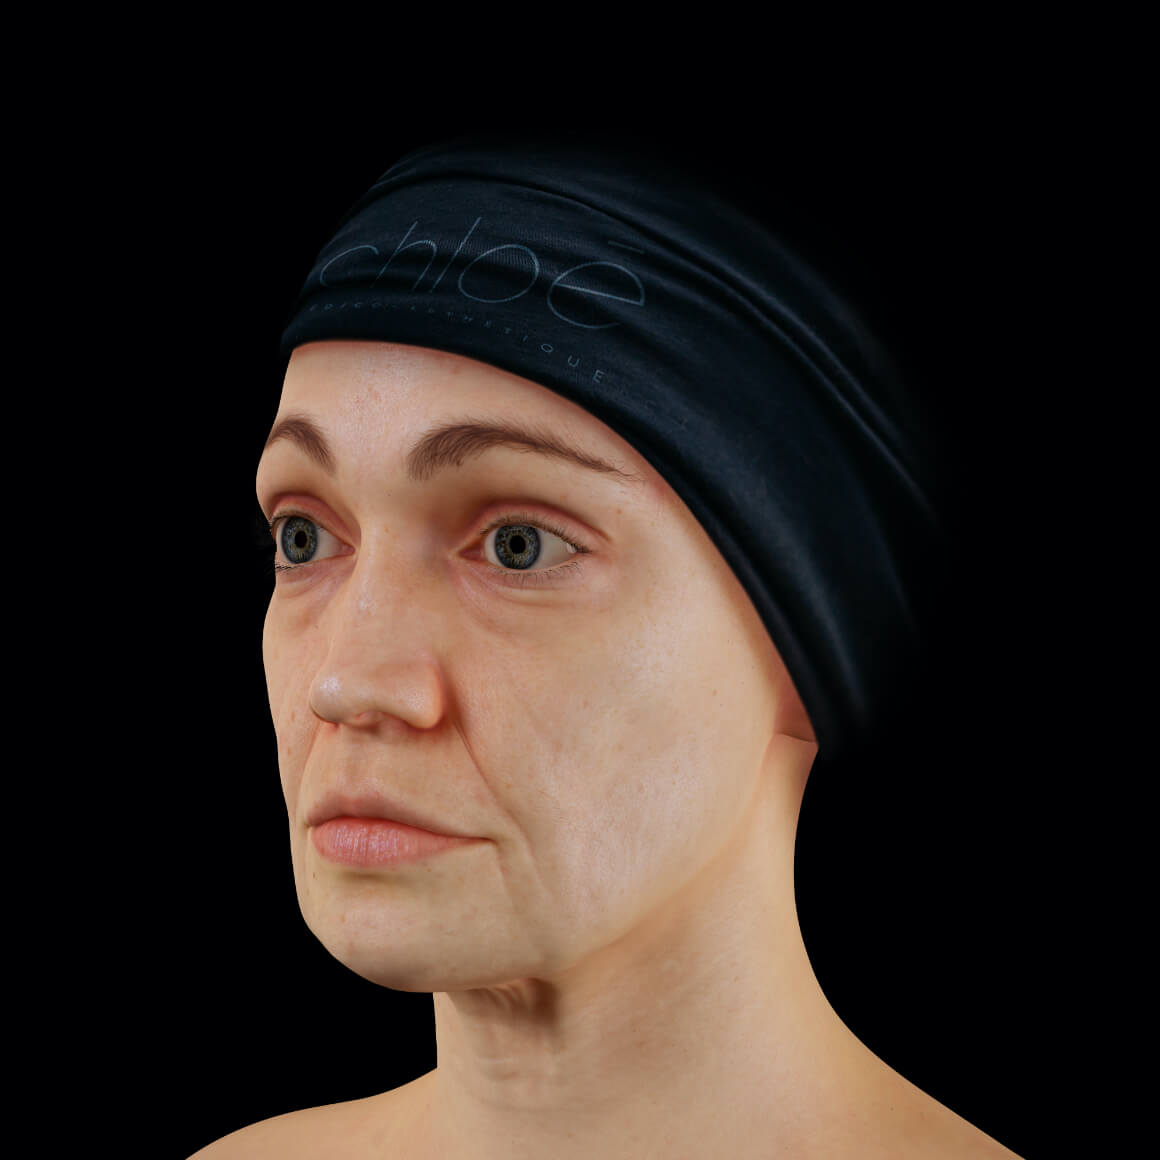 Female patient from Clinique Chloé positioned at an angle showing facial skin laxity